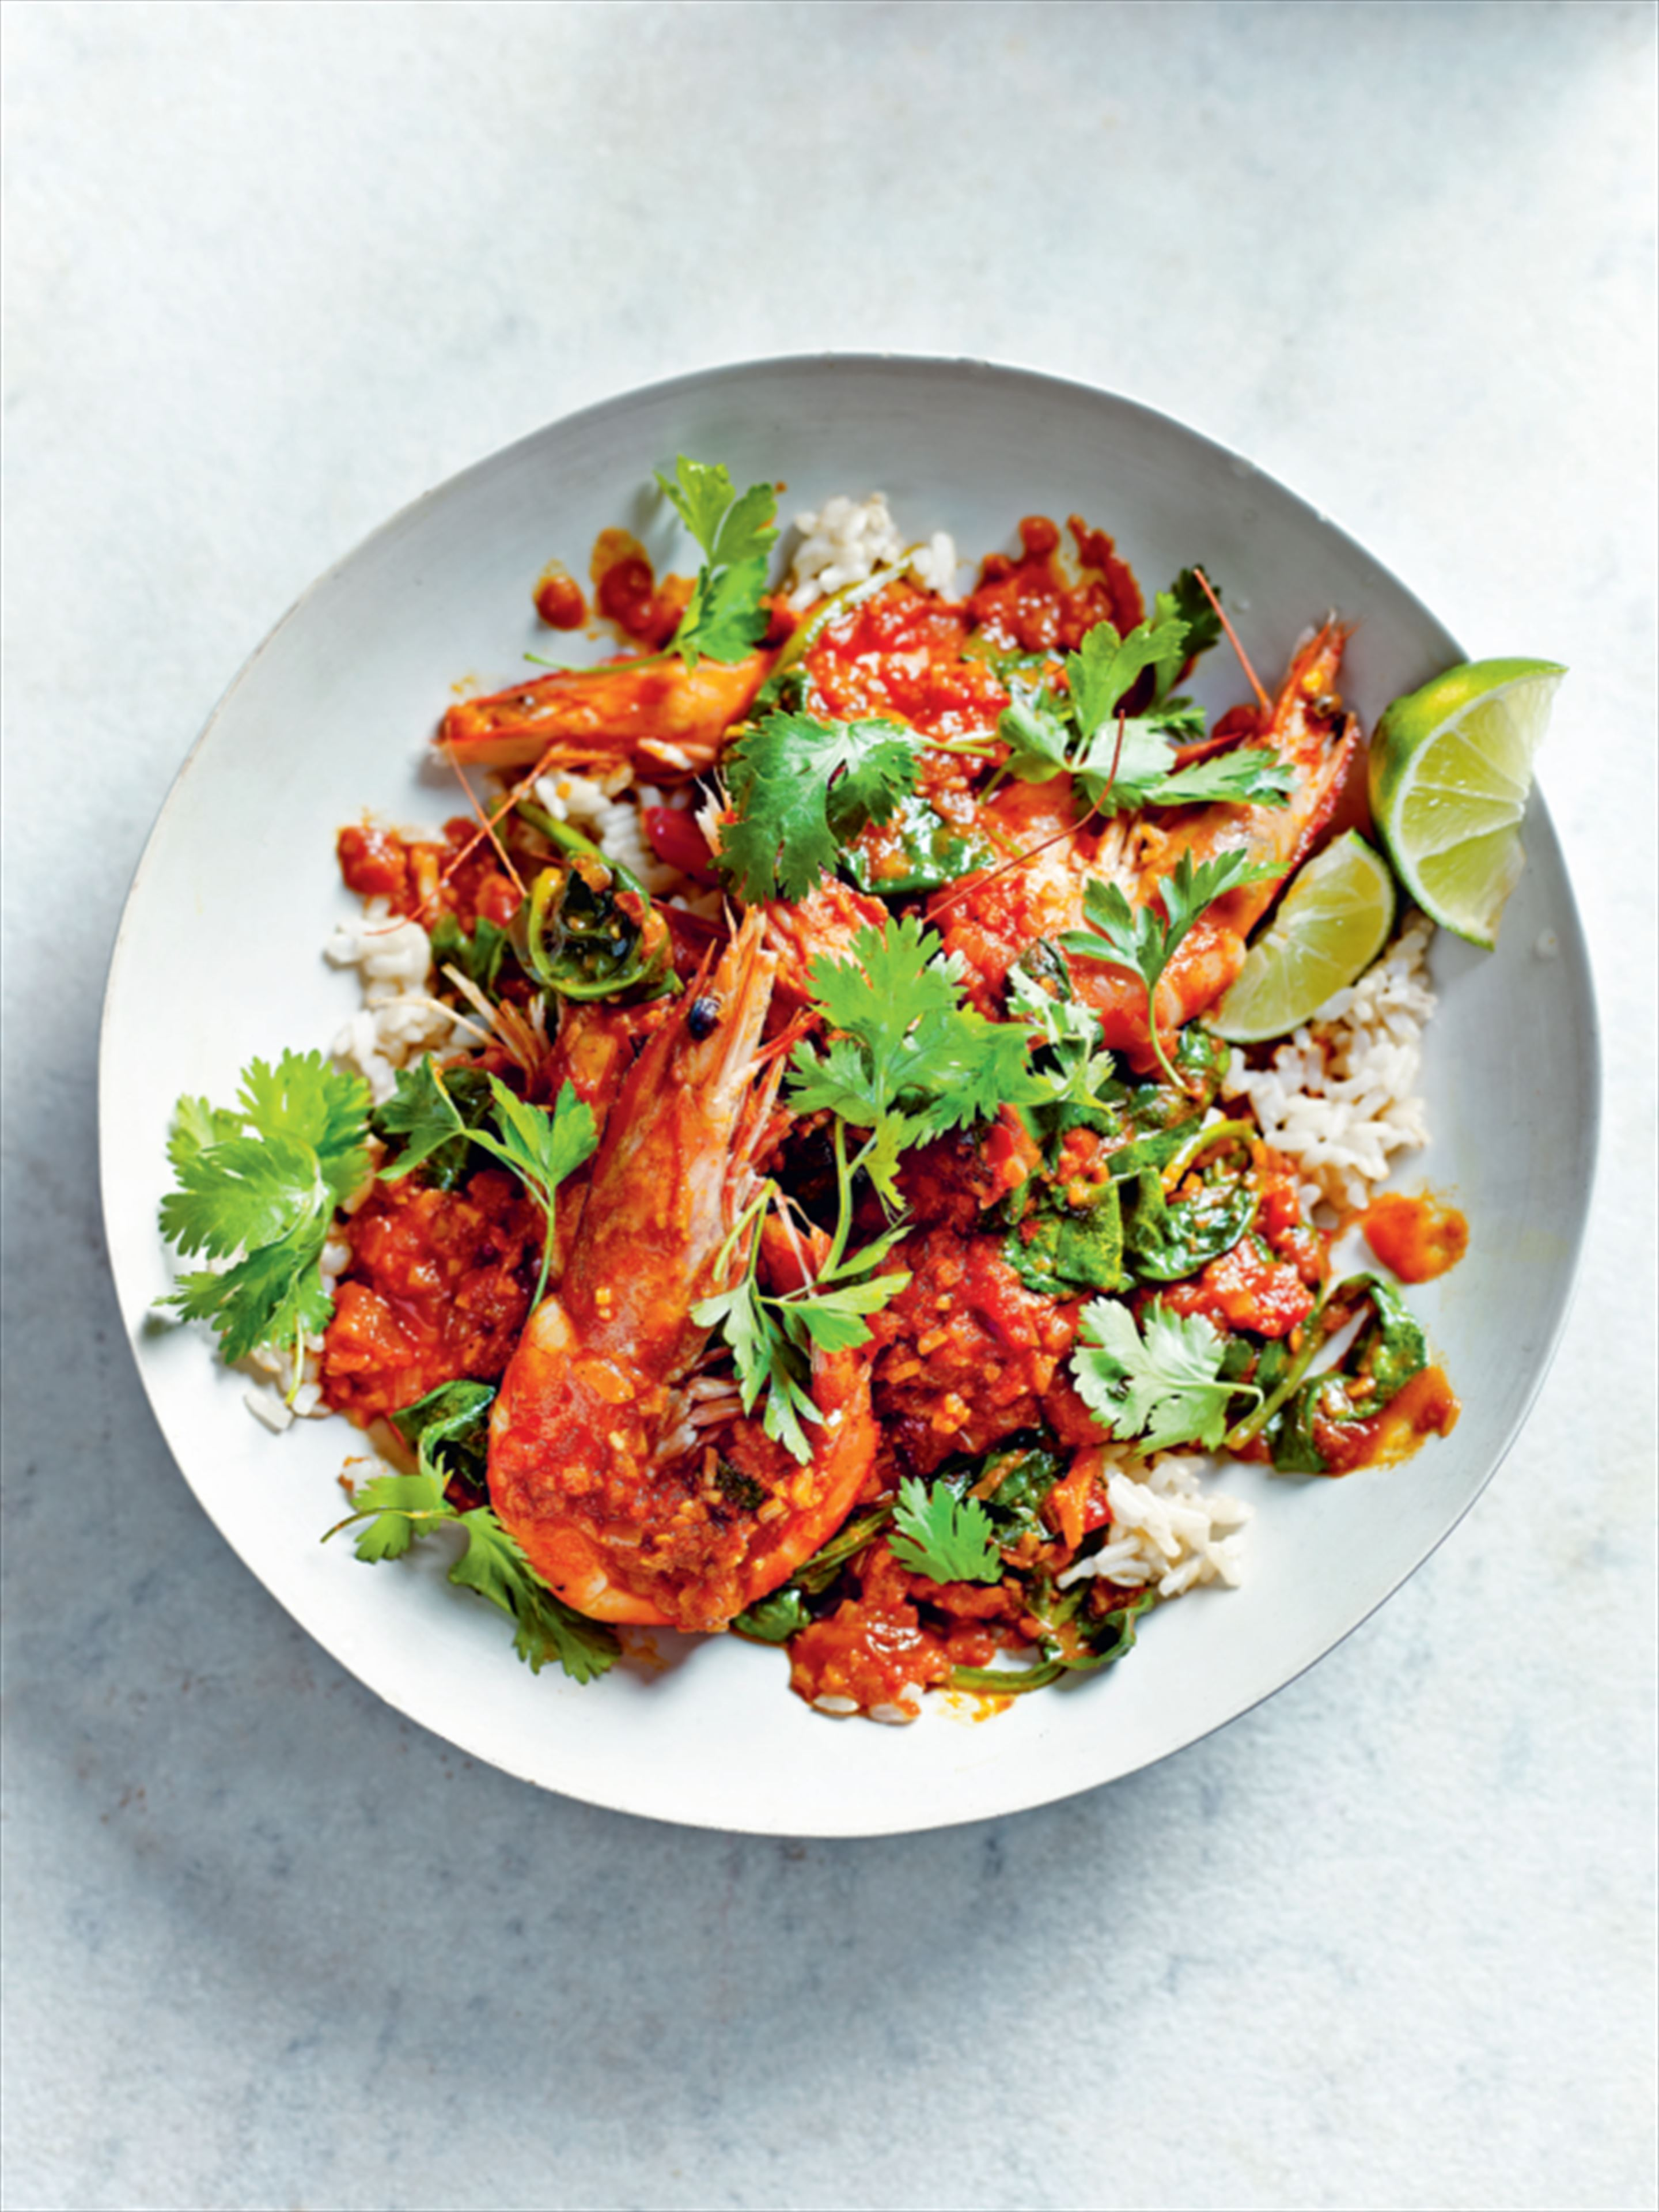 King prawn and spinach curry with herby brown rice